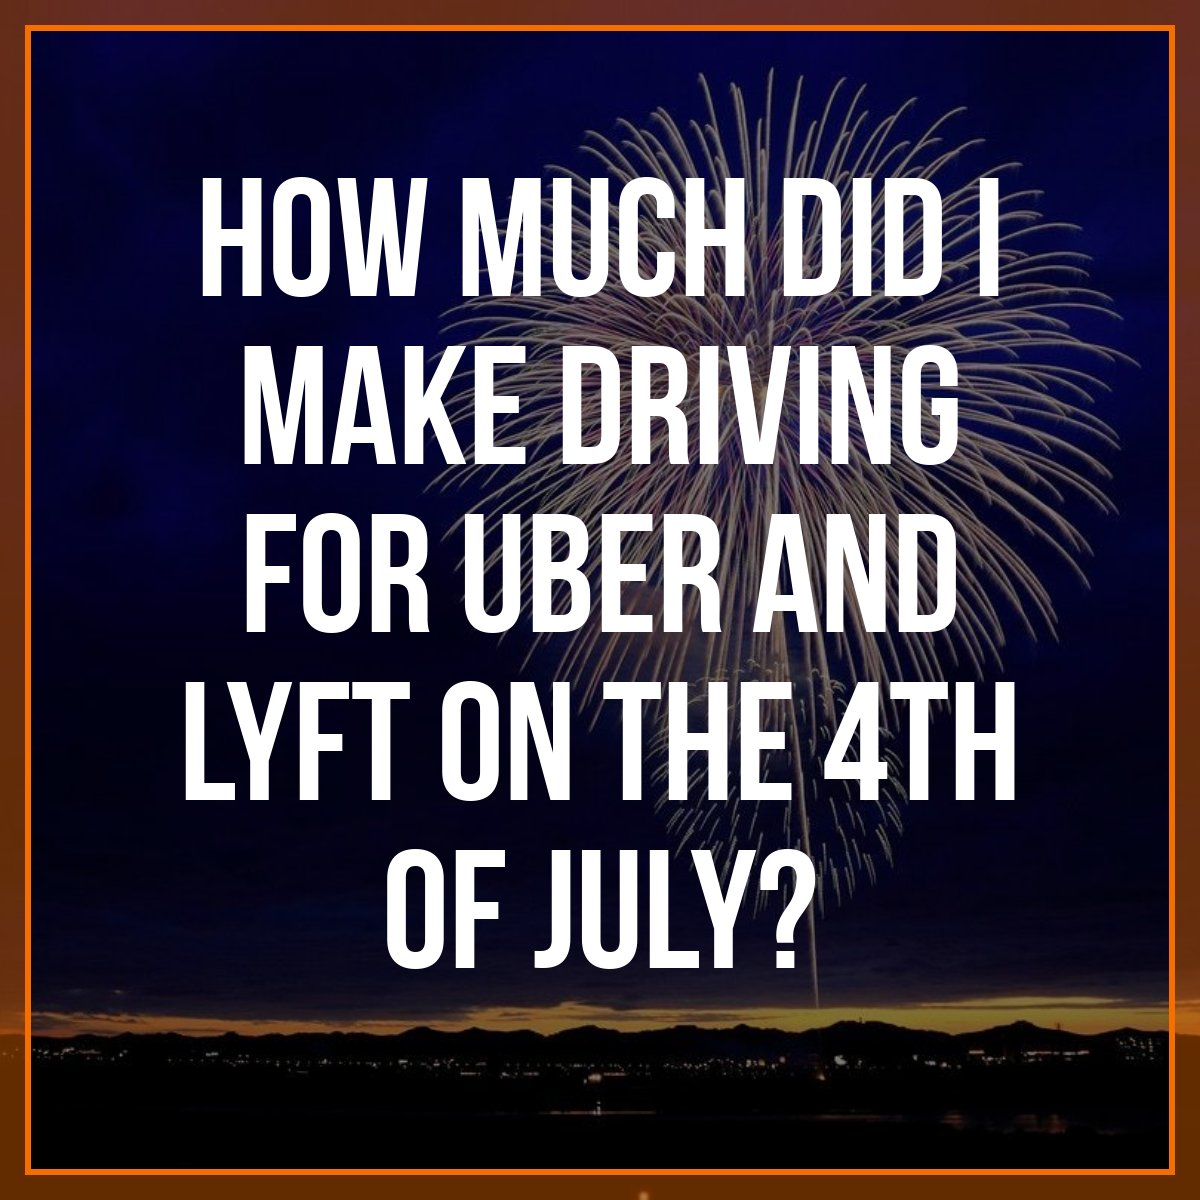 On July 4, RSG senior contributor Will Preston had his best night driving with Uber ever. And while not every holiday will be as lucrative, today Will shares his strategies for maximizing your time on the road, taking advantage of holidays, plus how much he made.